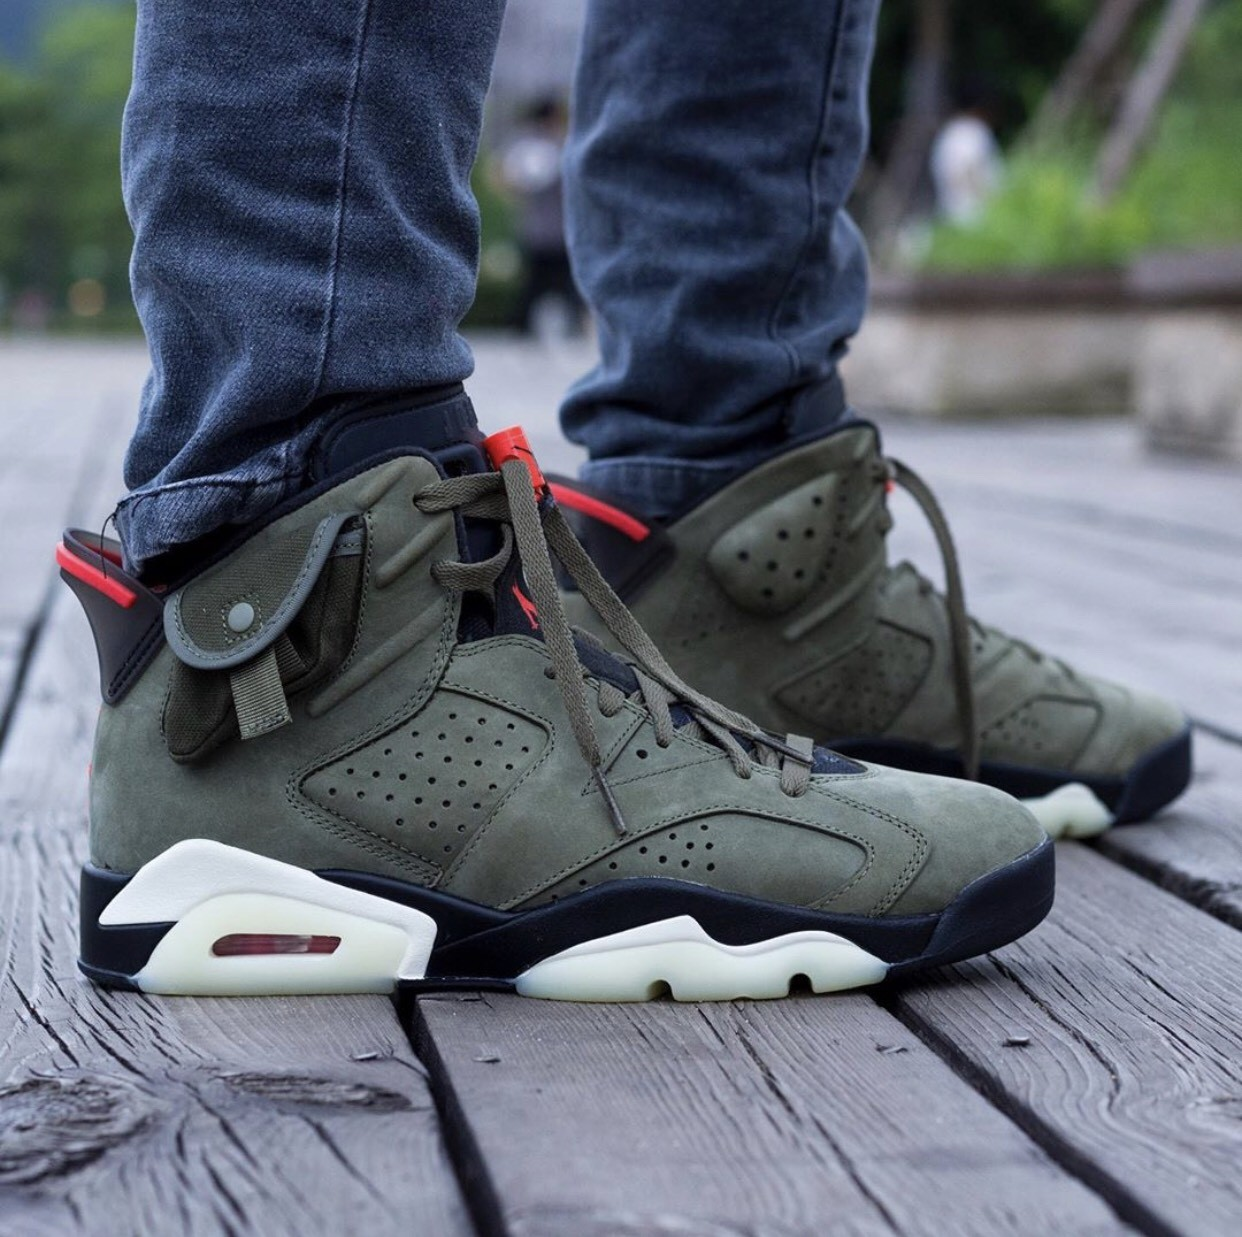 ▲Travis Scott X Air Jordan 6。(圖/翻攝自IG@hanzuying、Nike)